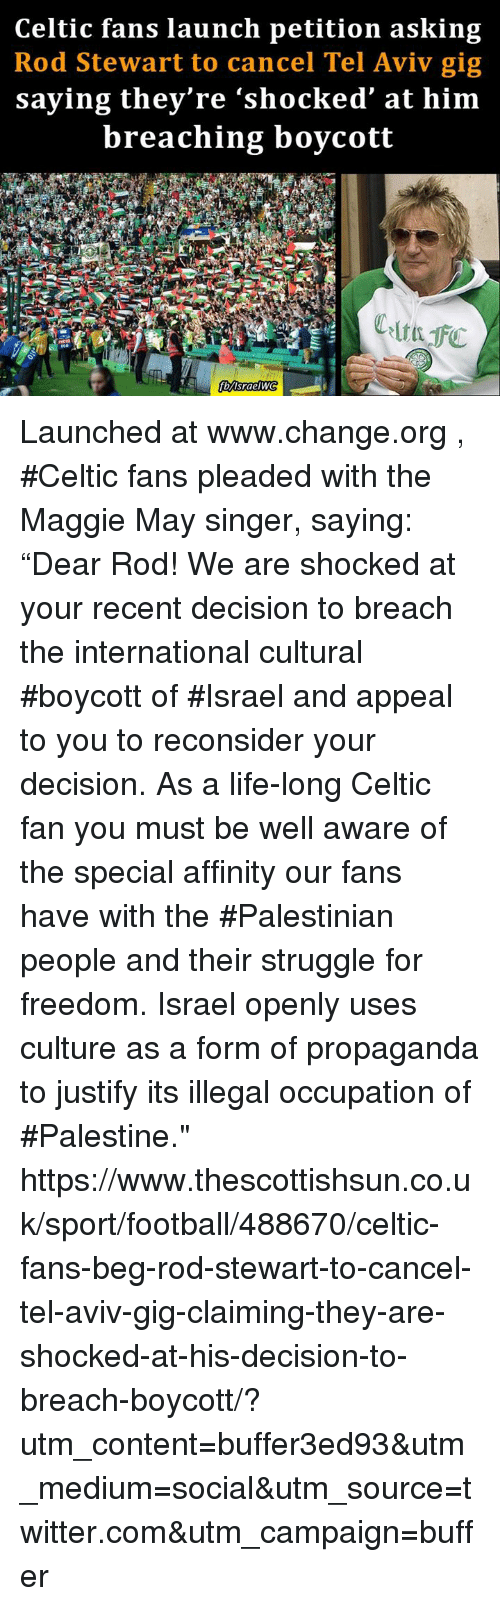 "internations: Celtic fans launch petition asking  Rod Stewart to cancel Tel Aviv gig  saying they're ""shocked at him  breaching boycott Launched at www.change.org , #Celtic fans pleaded with the Maggie May singer, saying: ""Dear Rod! We are shocked at your recent decision to breach the international cultural #boycott of #Israel and appeal to you to reconsider your decision. As a life-long Celtic fan you must be well aware of the special affinity our fans have with the #Palestinian people and their struggle for freedom. Israel openly uses culture as a form of propaganda to justify its illegal occupation of #Palestine."" https://www.thescottishsun.co.uk/sport/football/488670/celtic-fans-beg-rod-stewart-to-cancel-tel-aviv-gig-claiming-they-are-shocked-at-his-decision-to-breach-boycott/?utm_content=buffer3ed93&utm_medium=social&utm_source=twitter.com&utm_campaign=buffer"